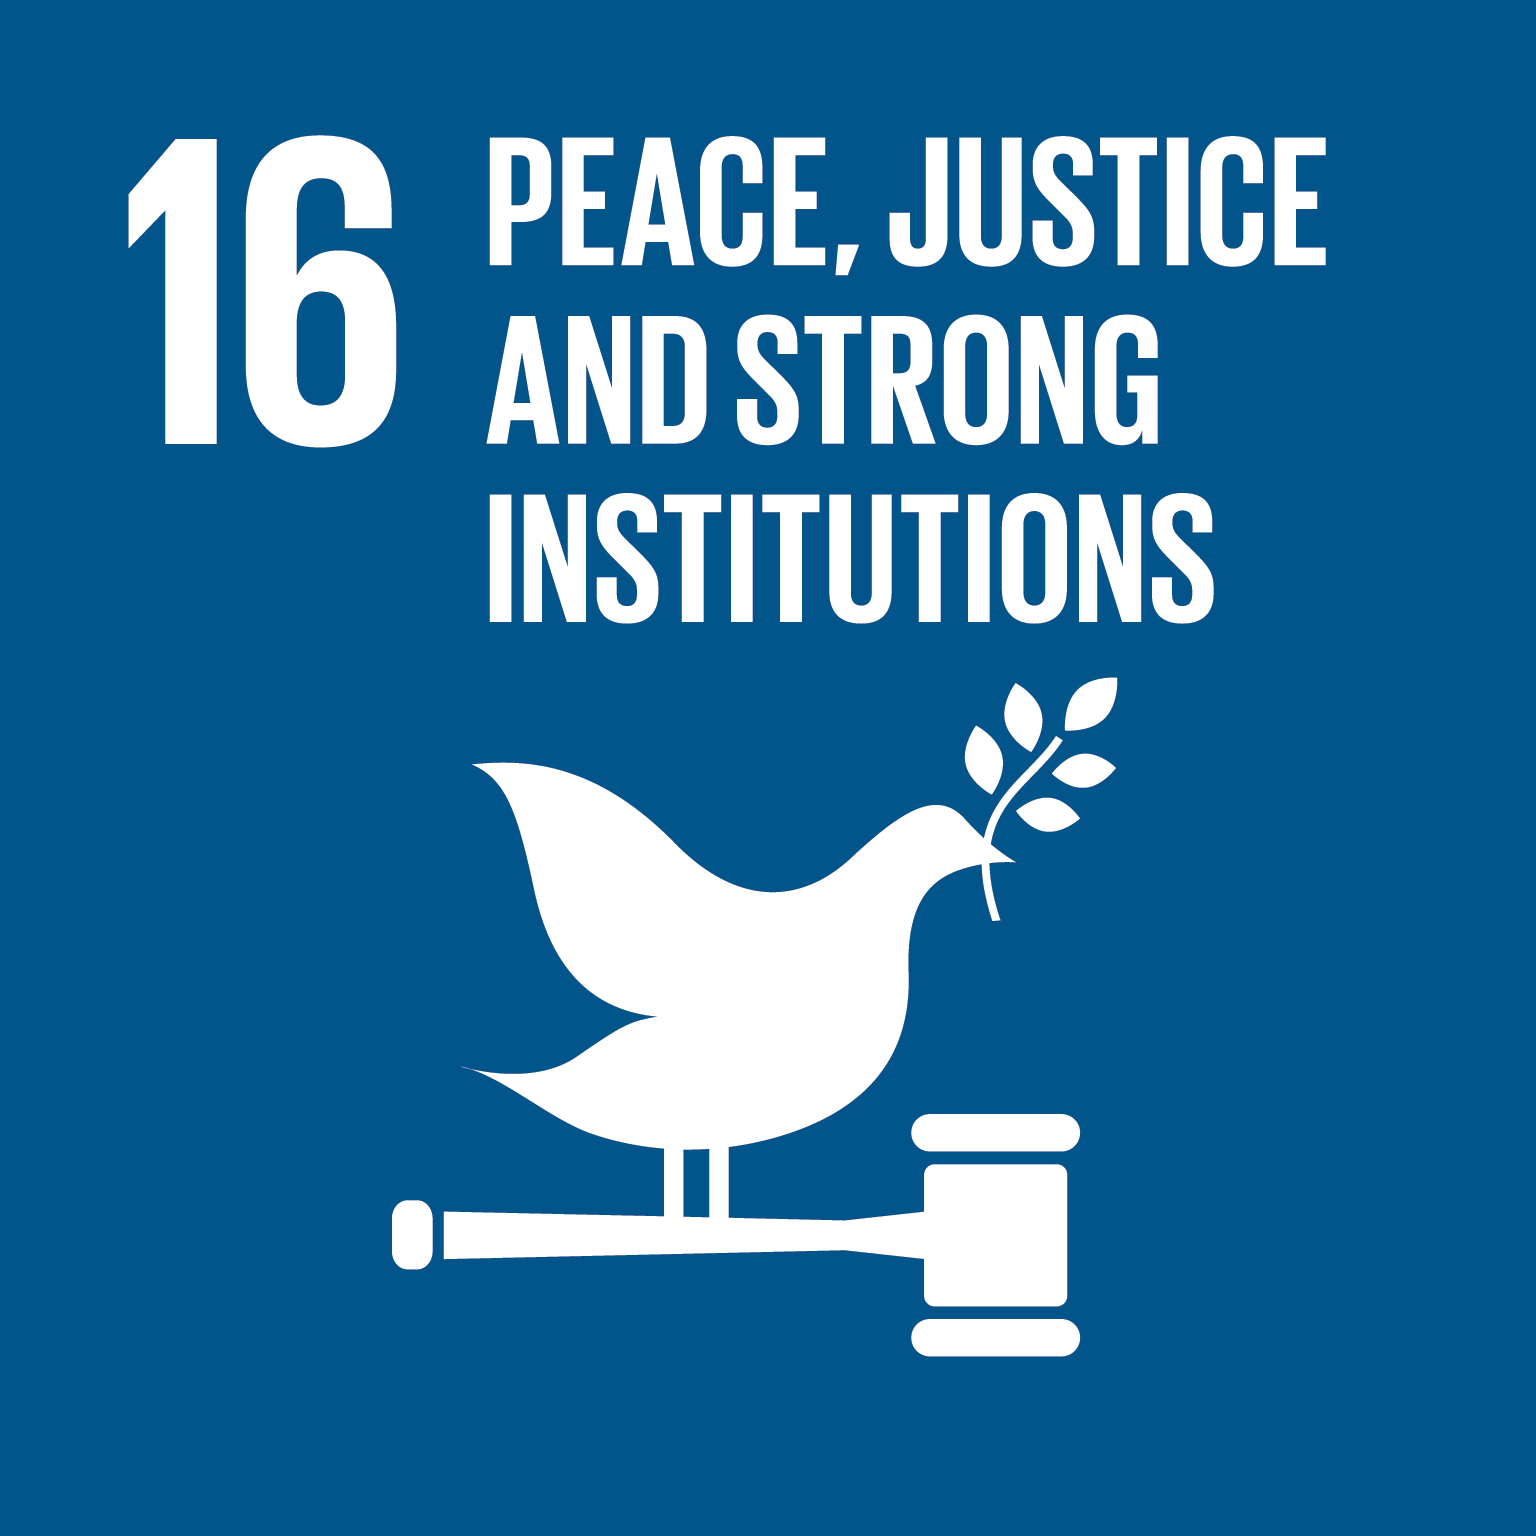 Image of Goal 16 - Peace, Justice and Strong Institutions